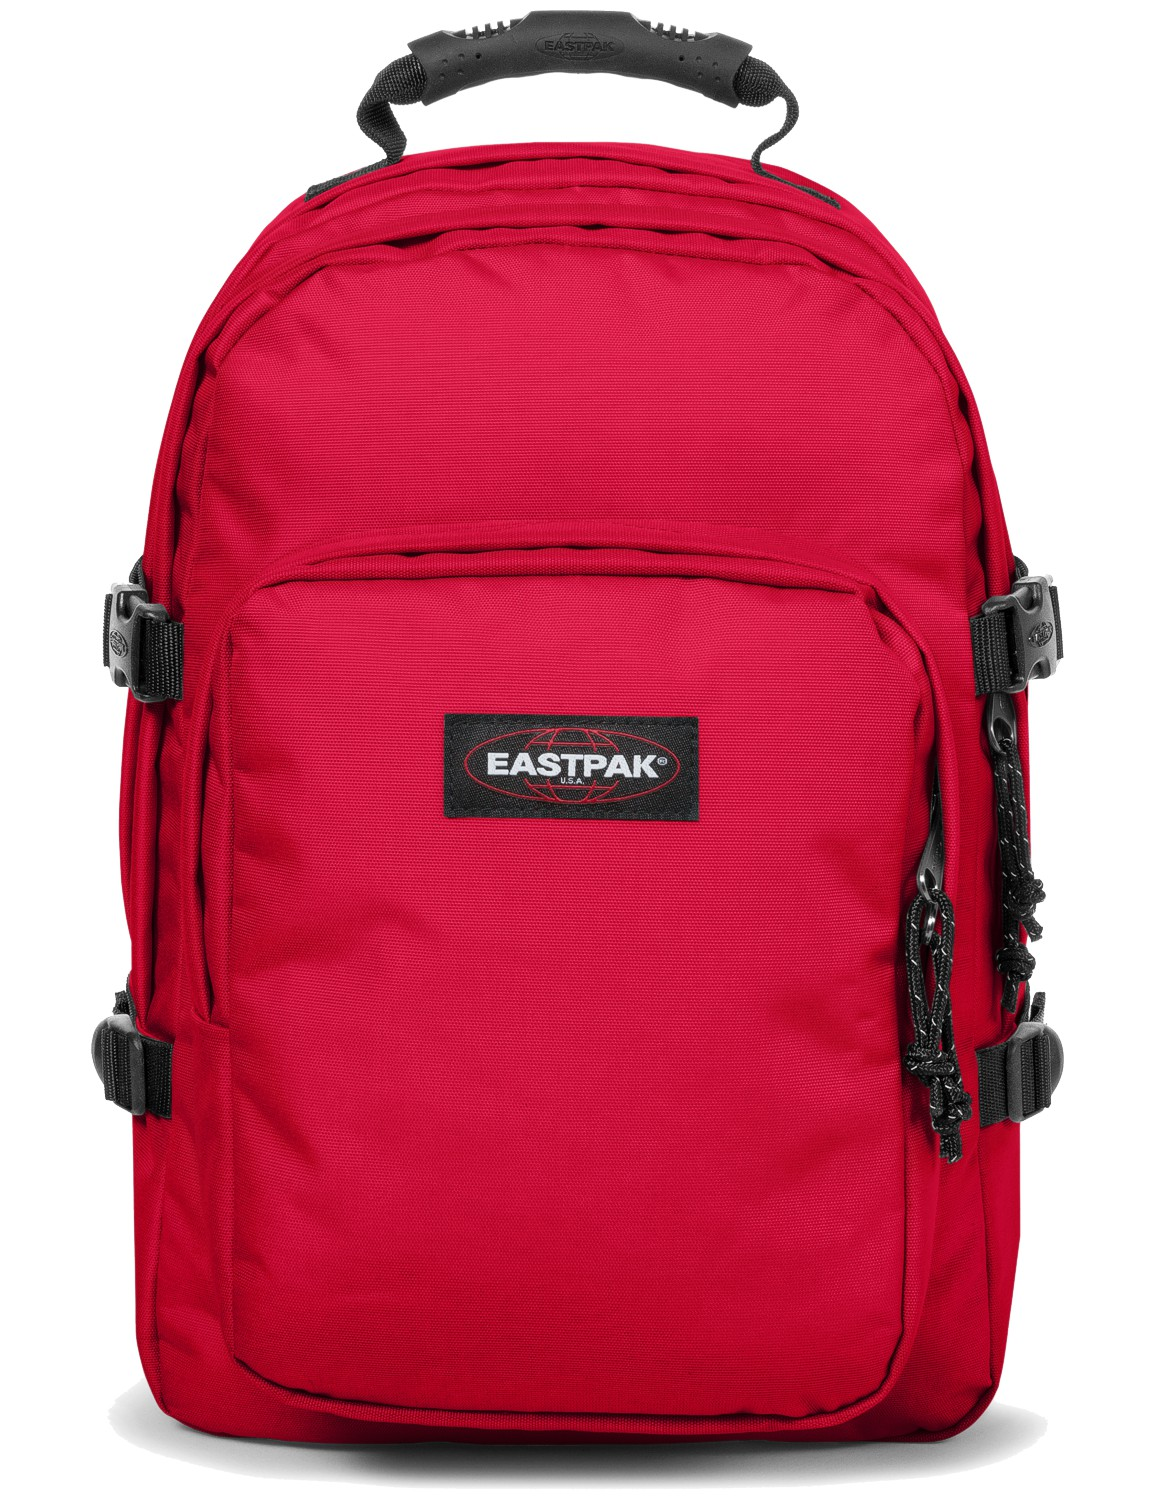 Eastpak Rucksack »Provider« mit Laptopfach Sailor Red Rot